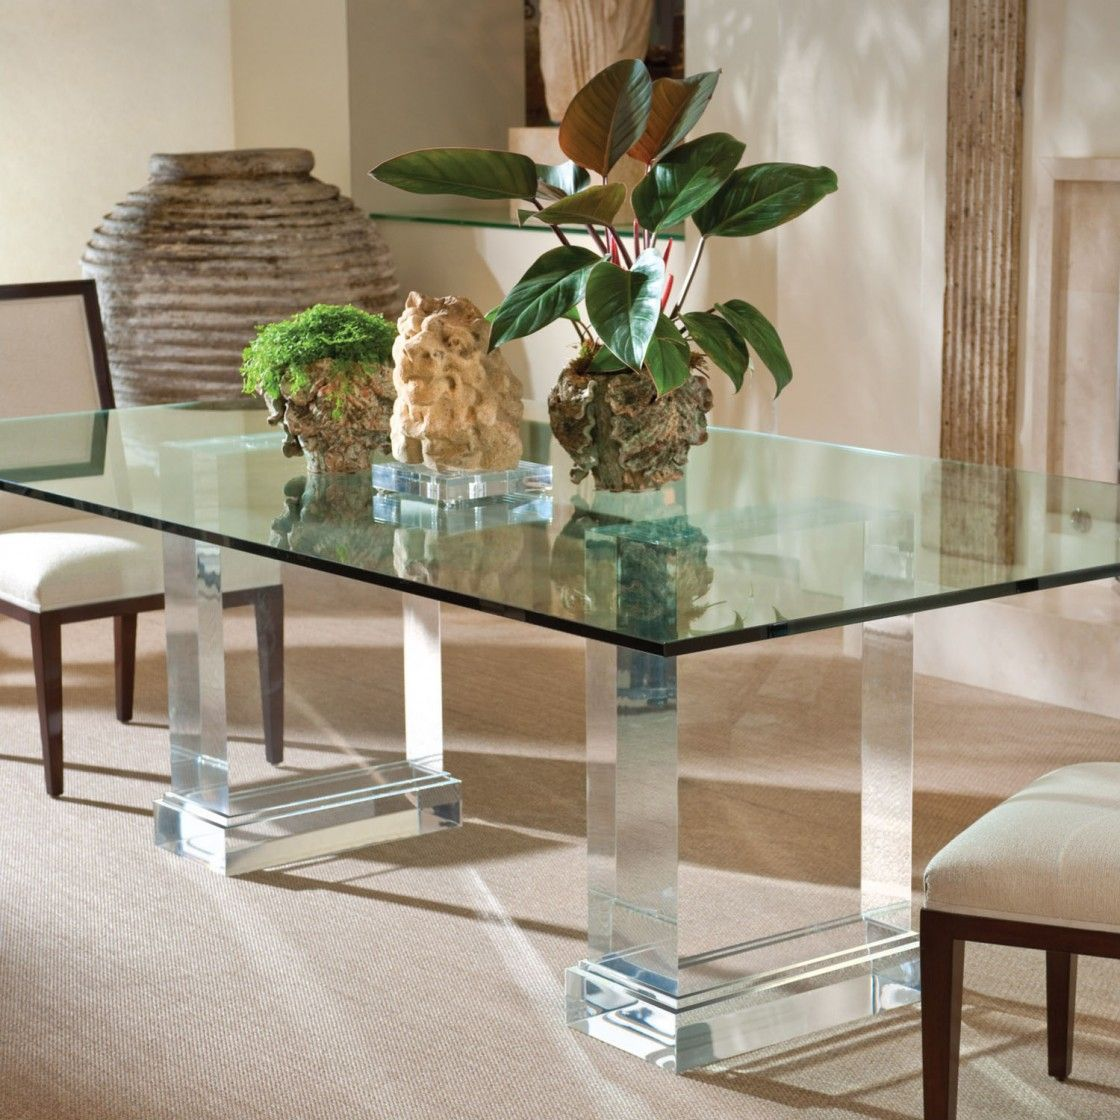 Acrylic Clear Glass Rectangular Dining Table Stainless Steel Mirrored Base And Plants Centerpie Glass Kitchen Tables Glass Dining Table Metal Base Dining Table [ 1120 x 1120 Pixel ]